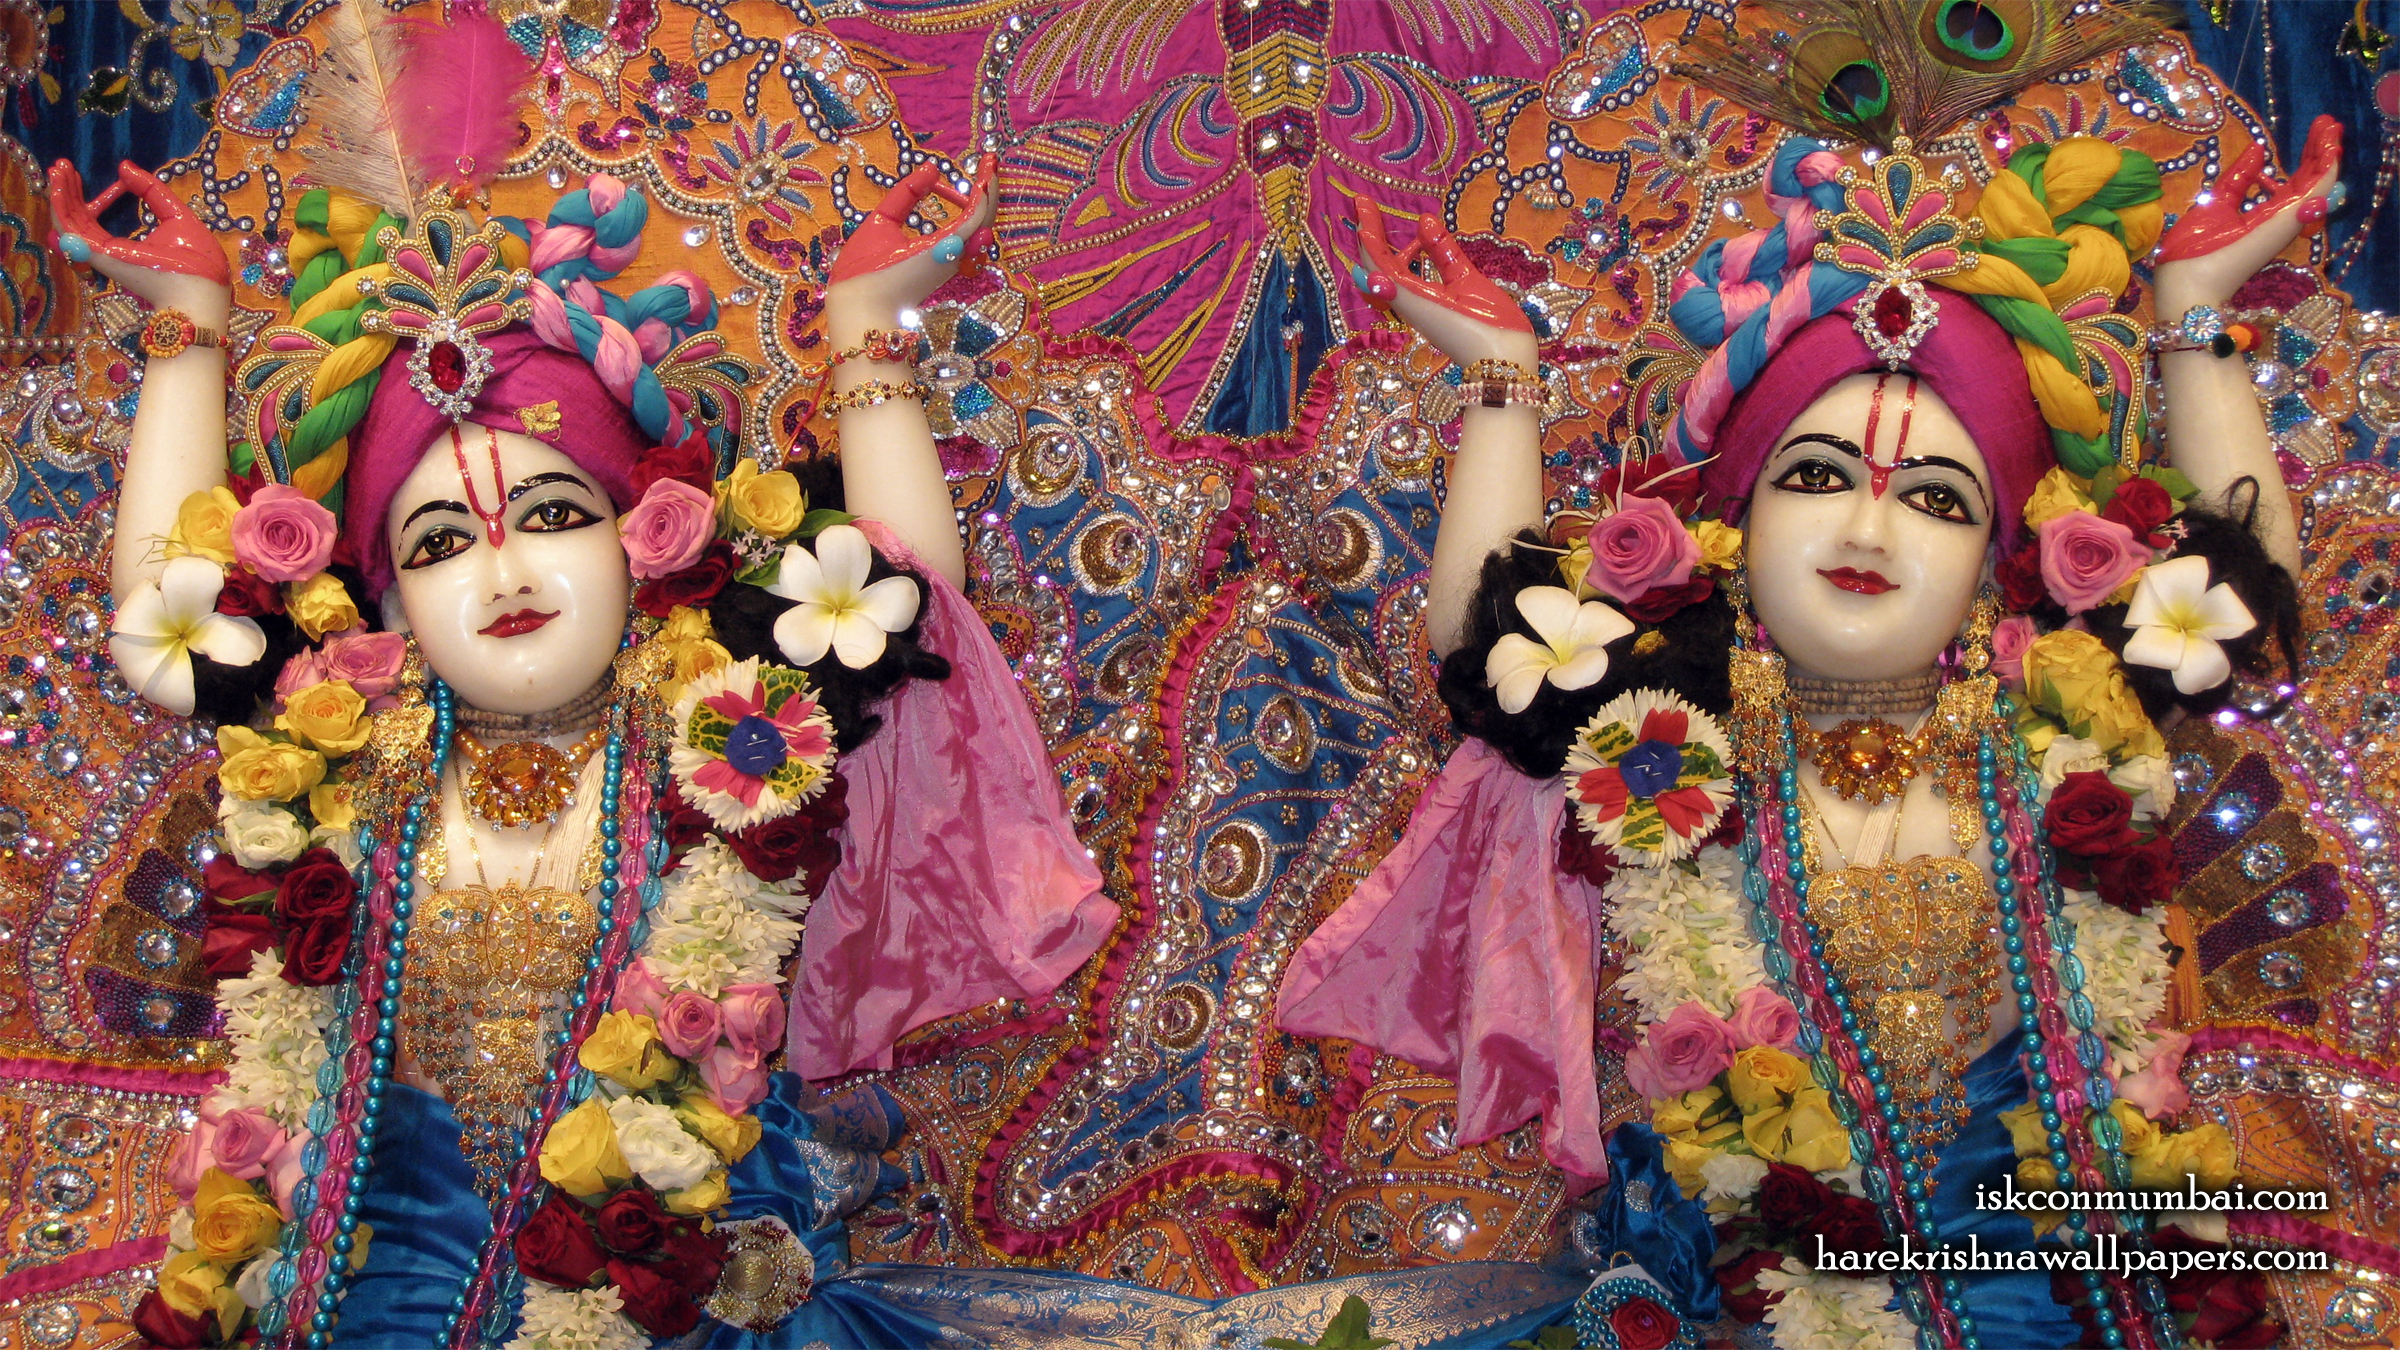 Sri Sri Gaura Nitai Close up Wallpaper (006) Size 2400x1350 Download